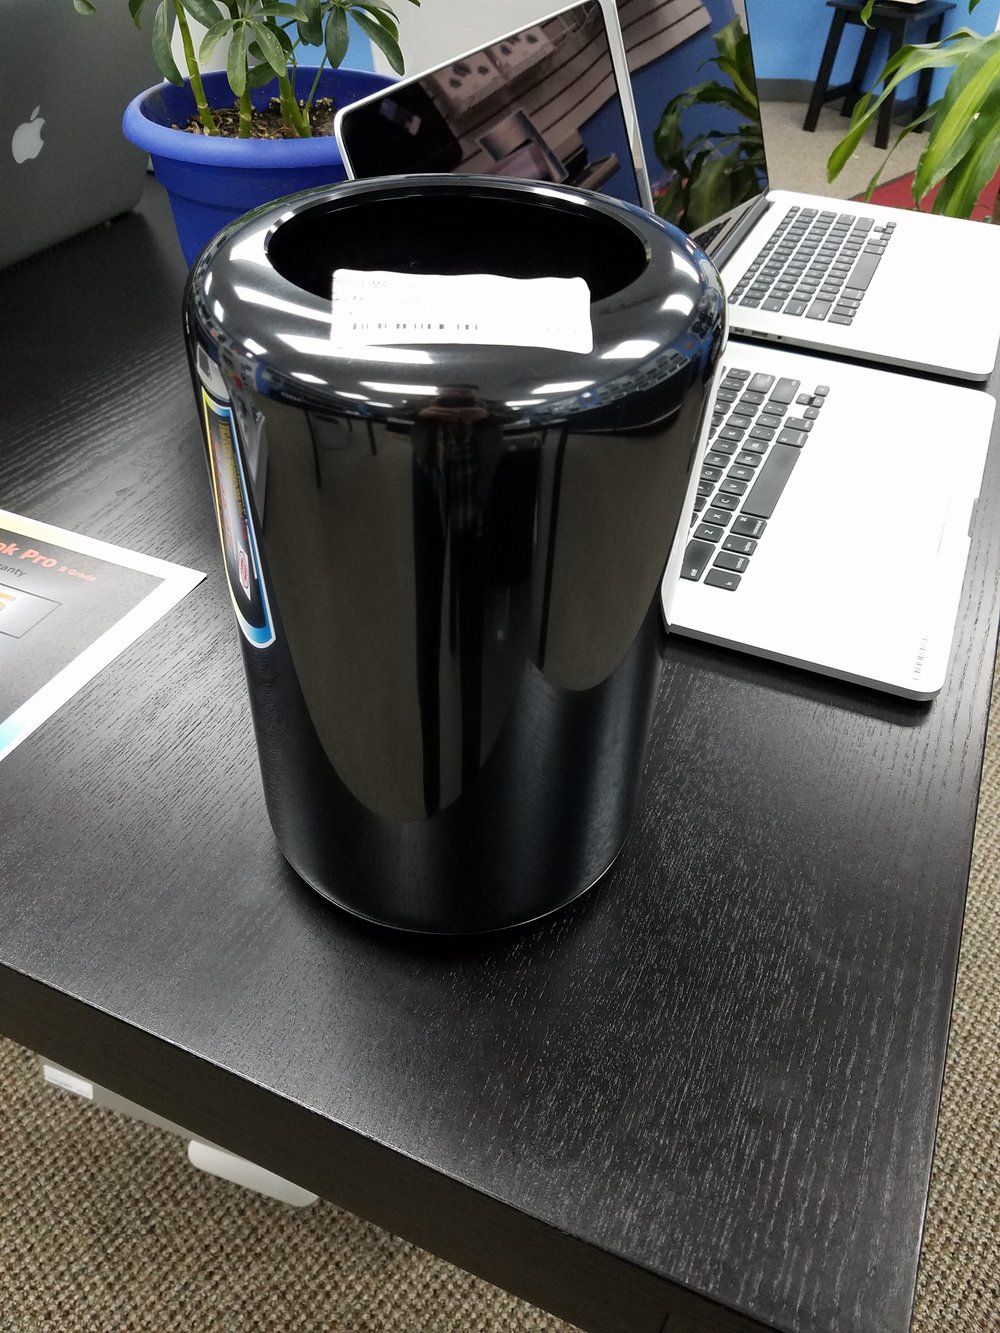 Apple Mac Pro.jpg